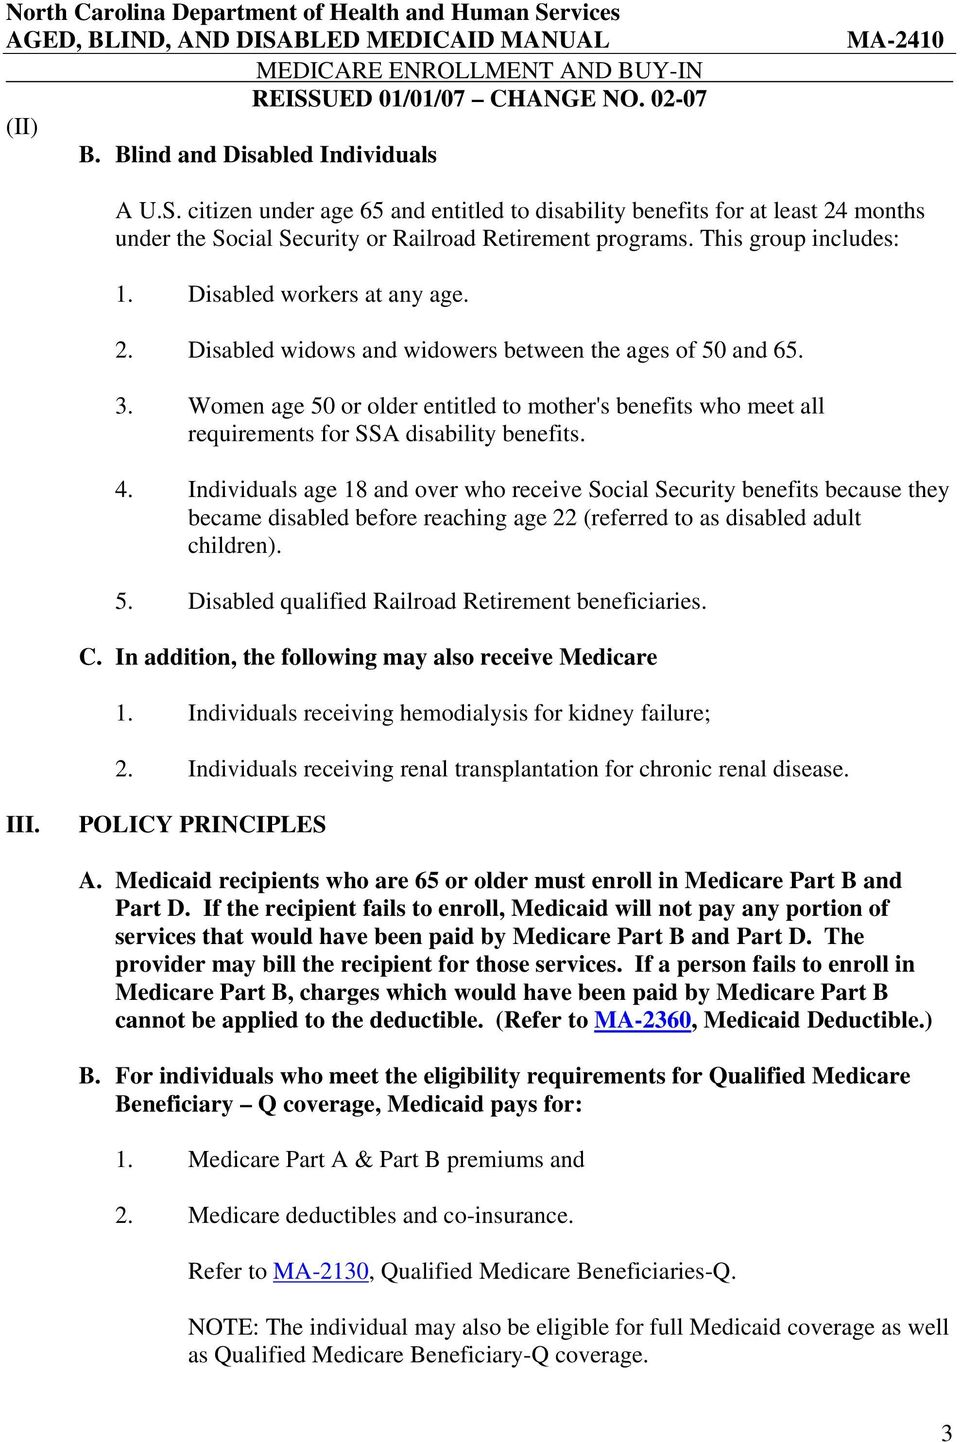 Women Age 50 Or Older Entitled To Mother's Benefits Who Meet All  Requirements For Ssa Disability About Medicare's Three Parts